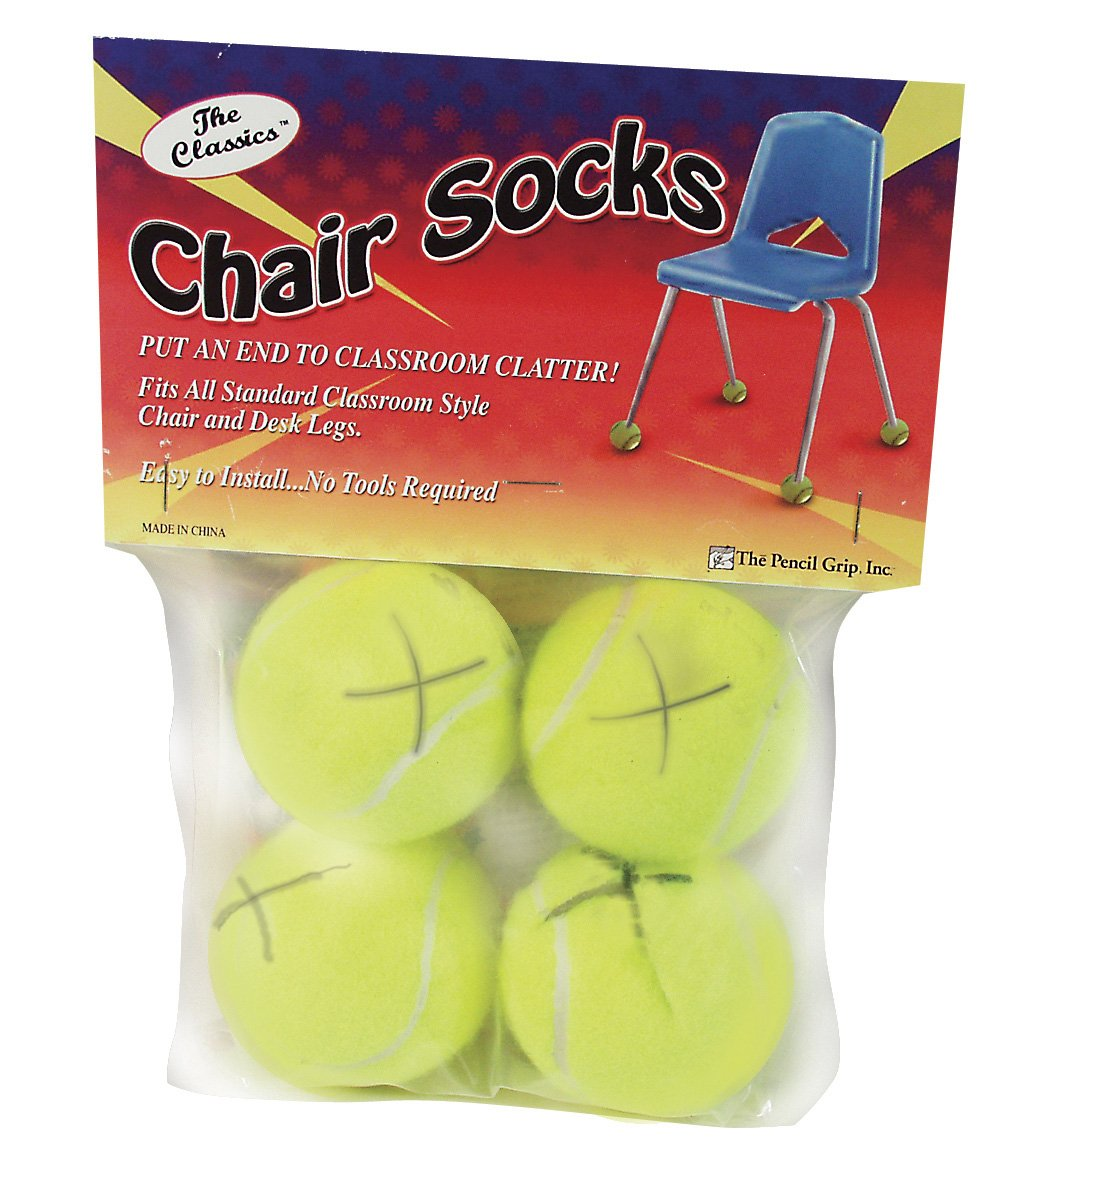 Pencil Grip The Classics Chair Sox, Yellow, 4 Count (TPG-230) THE PENCIL GRIP EDRE21843